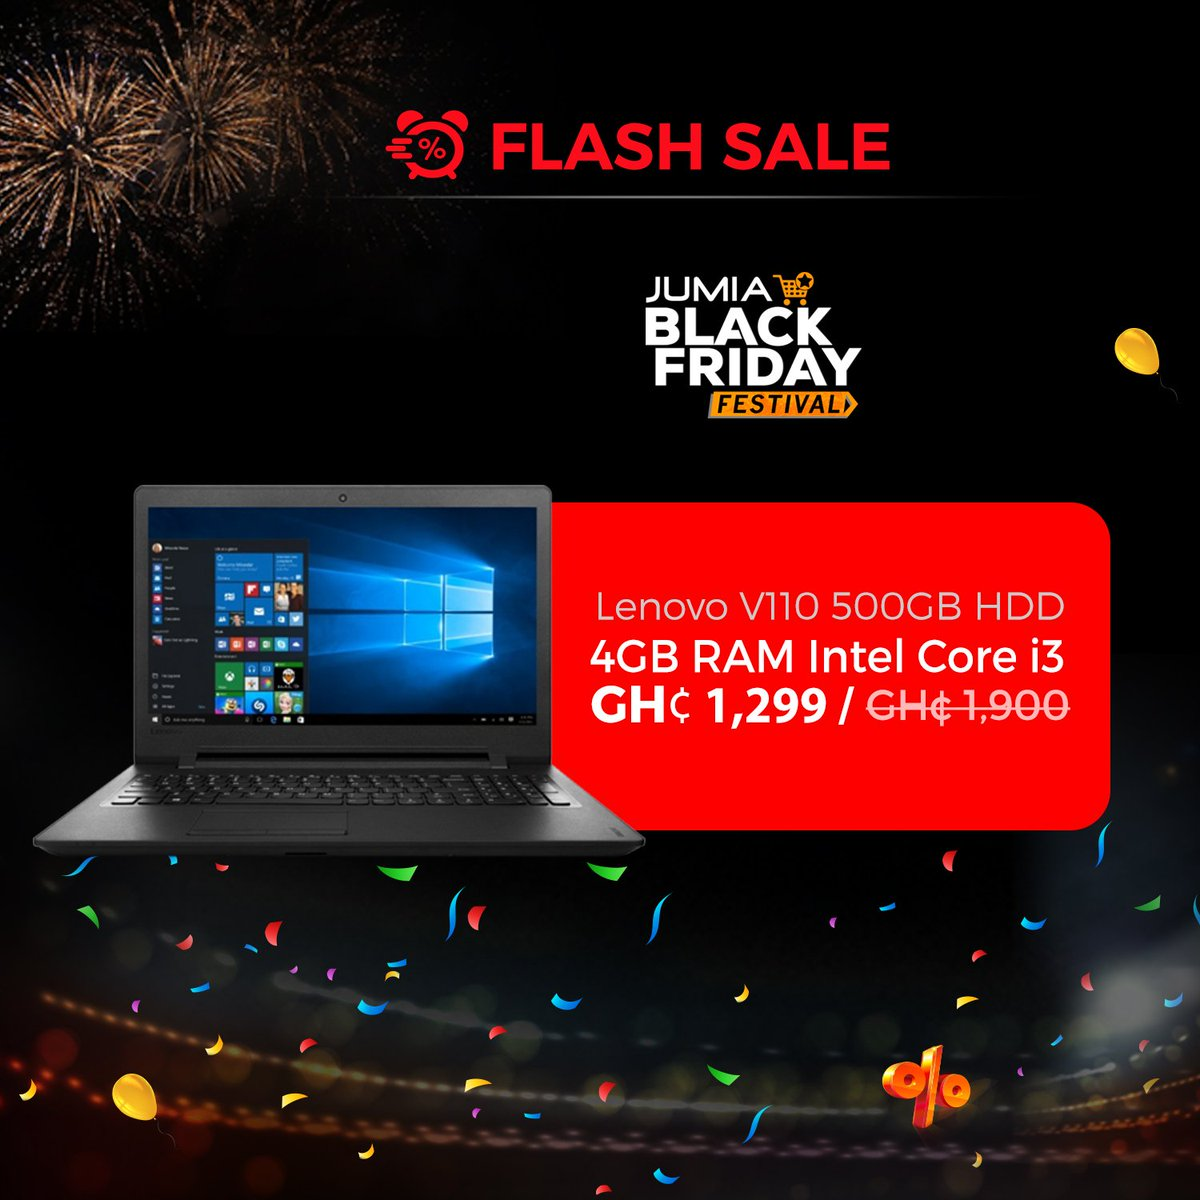 Jumia Ghana On Twitter Flash Sale Is Live Now Hurry Order Now